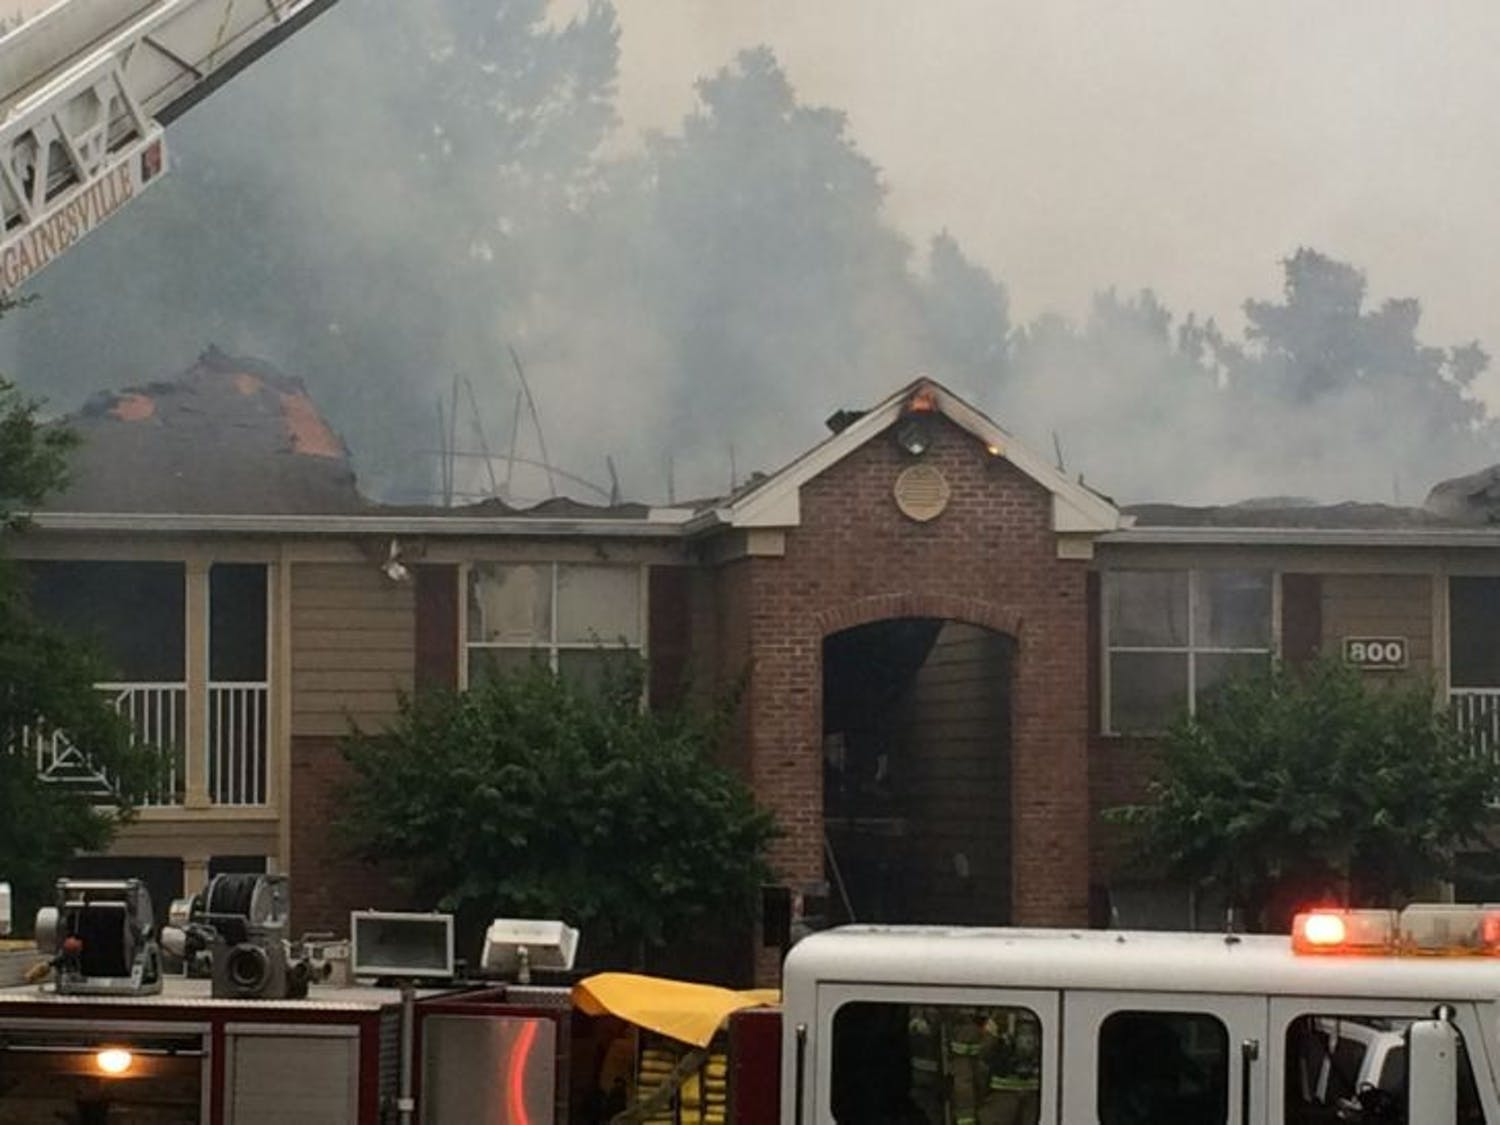 The extent of the damages to the building is currently being assessed, but the fire burned to both ends of the building